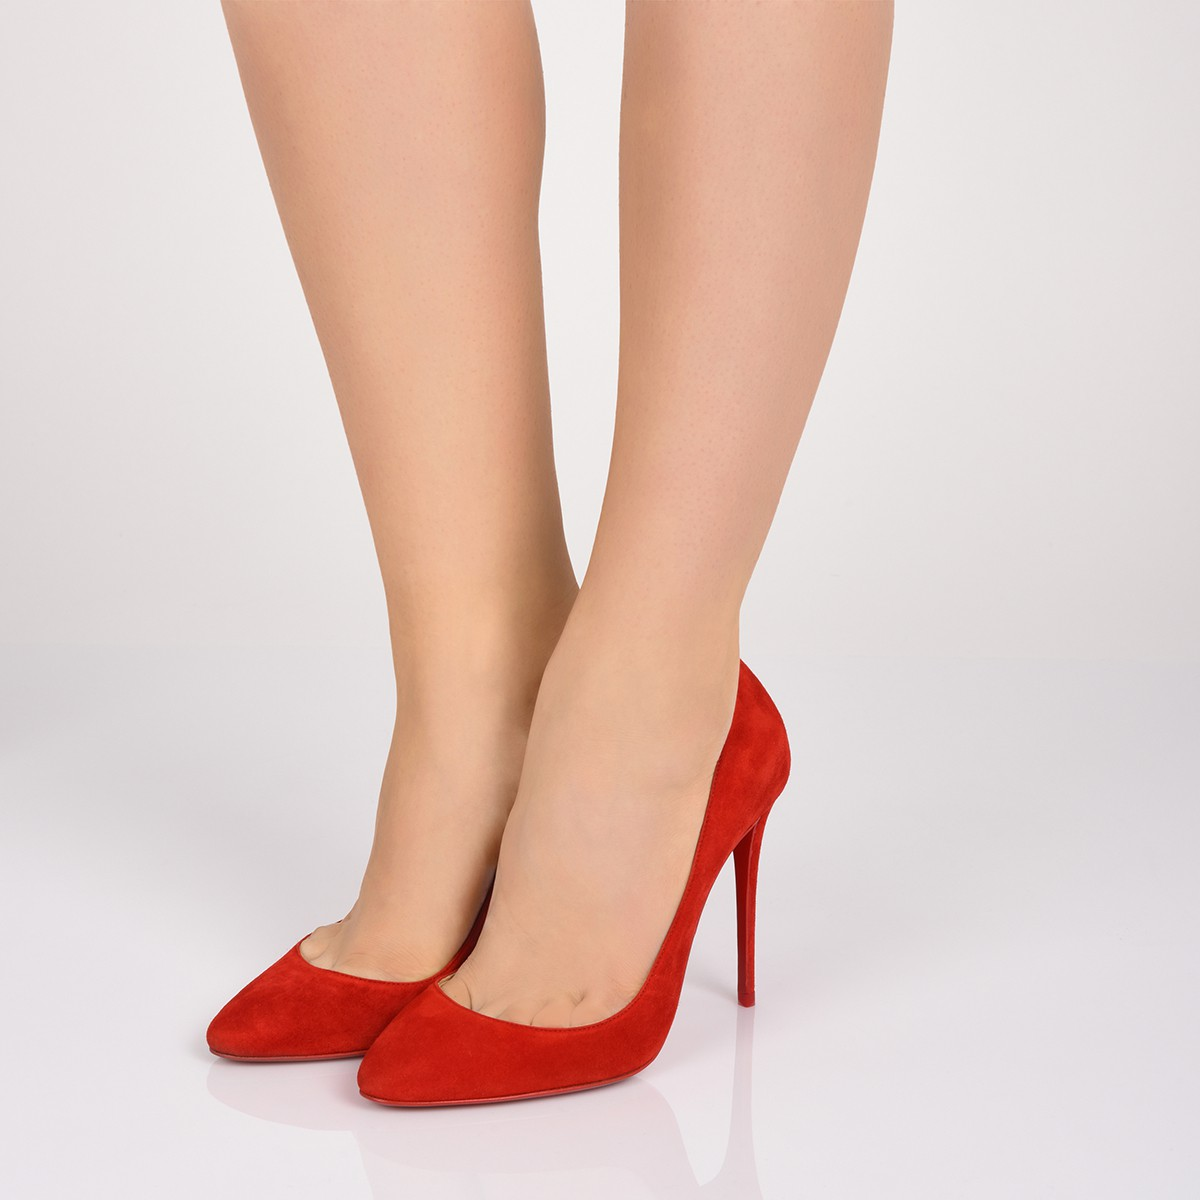 Women Shoes - Eloise - Christian Louboutin